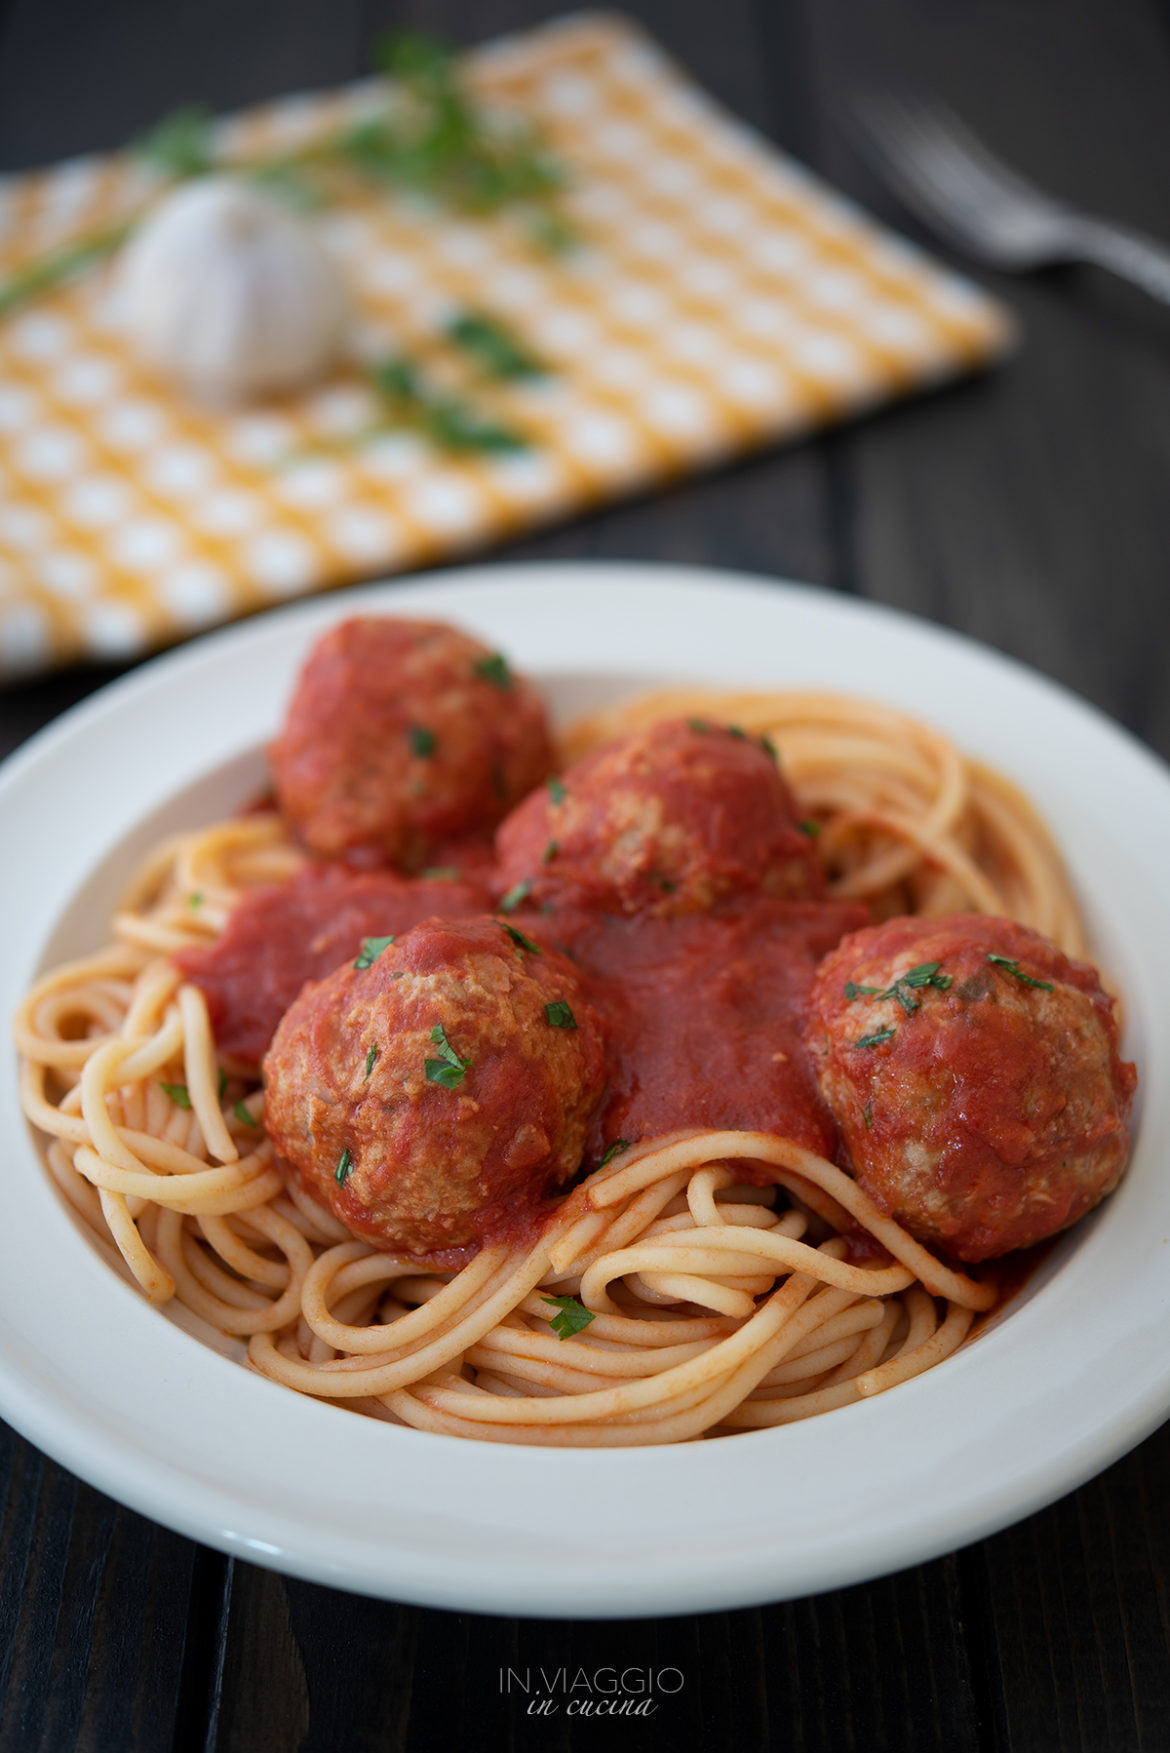 pasta with non-fried meatballs in tomato sauce